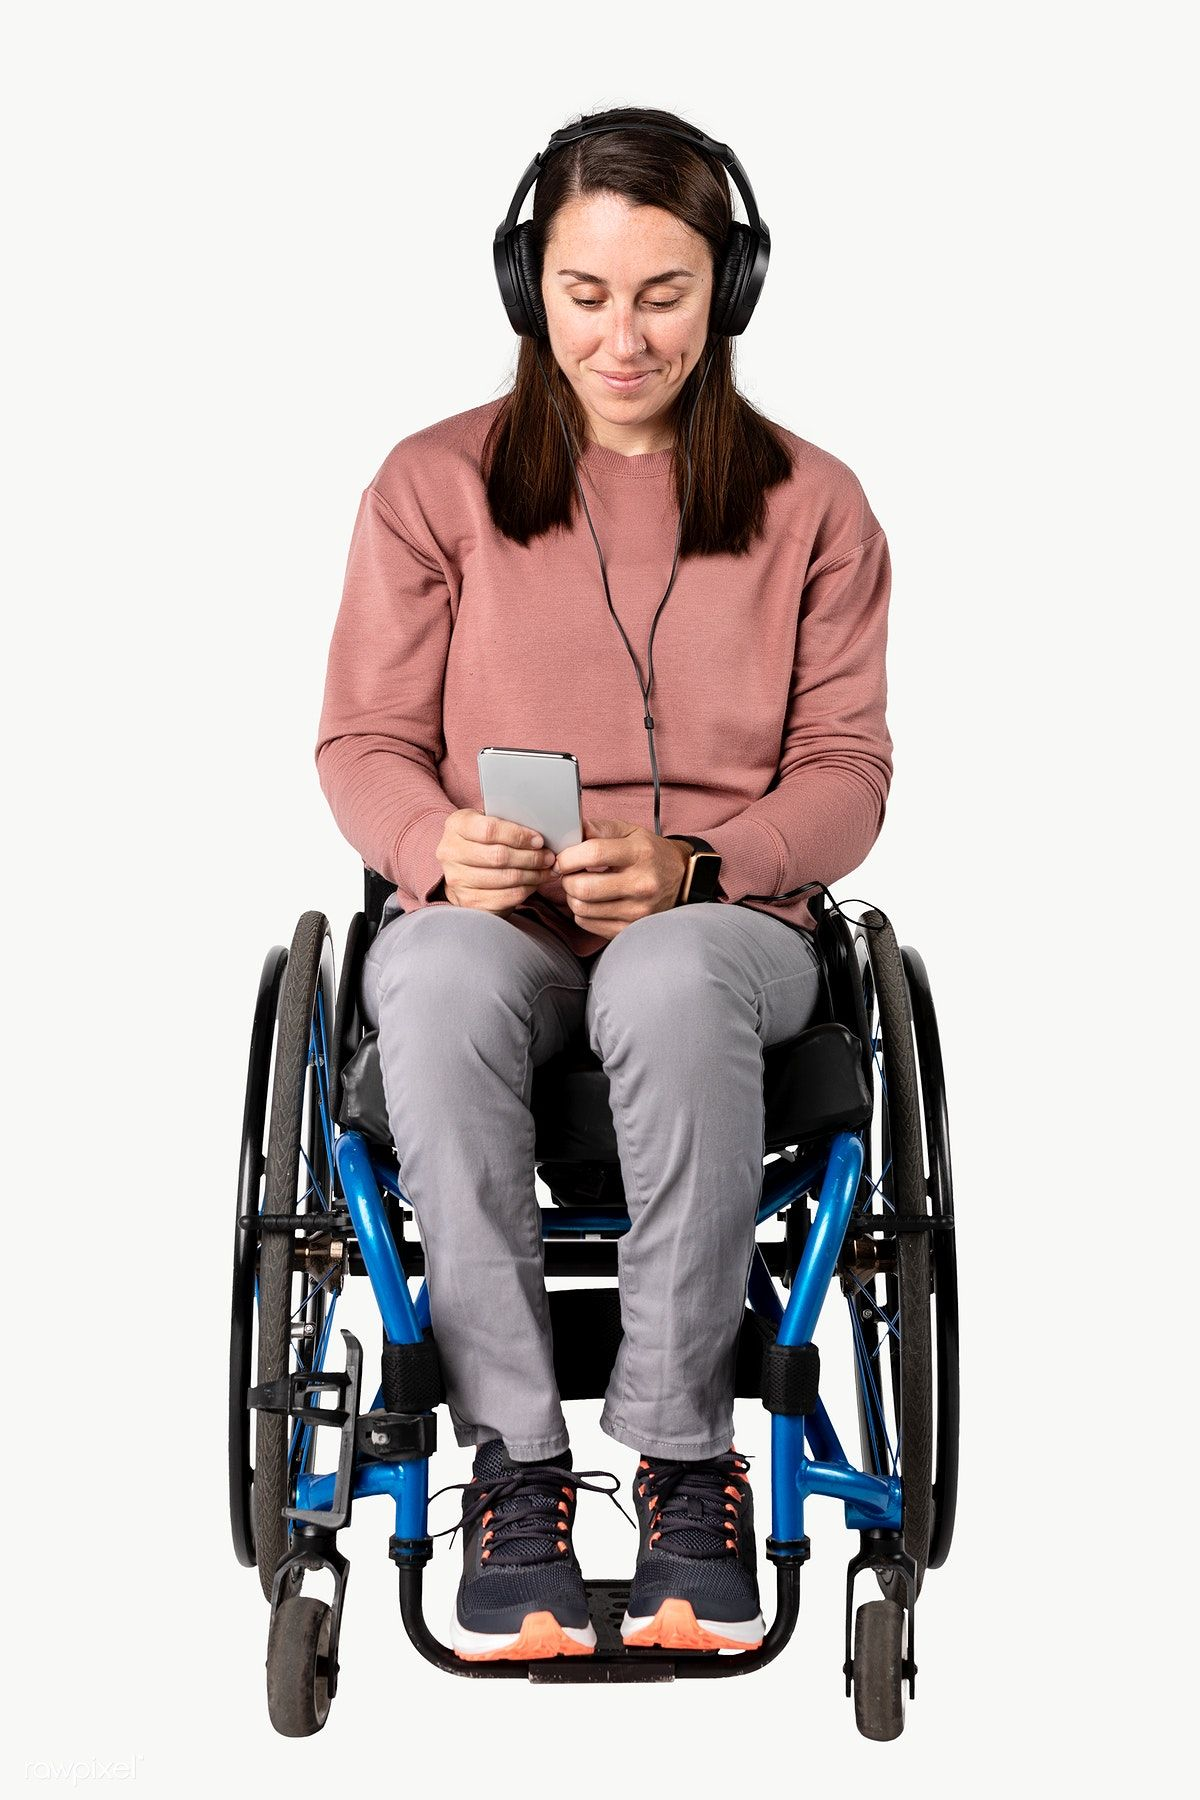 Cool Woman In A Wheelchair Listening To Music Premium Image By Rawpixel Com Mckinsey Wheelchair Wheelchair Women Listening To Music